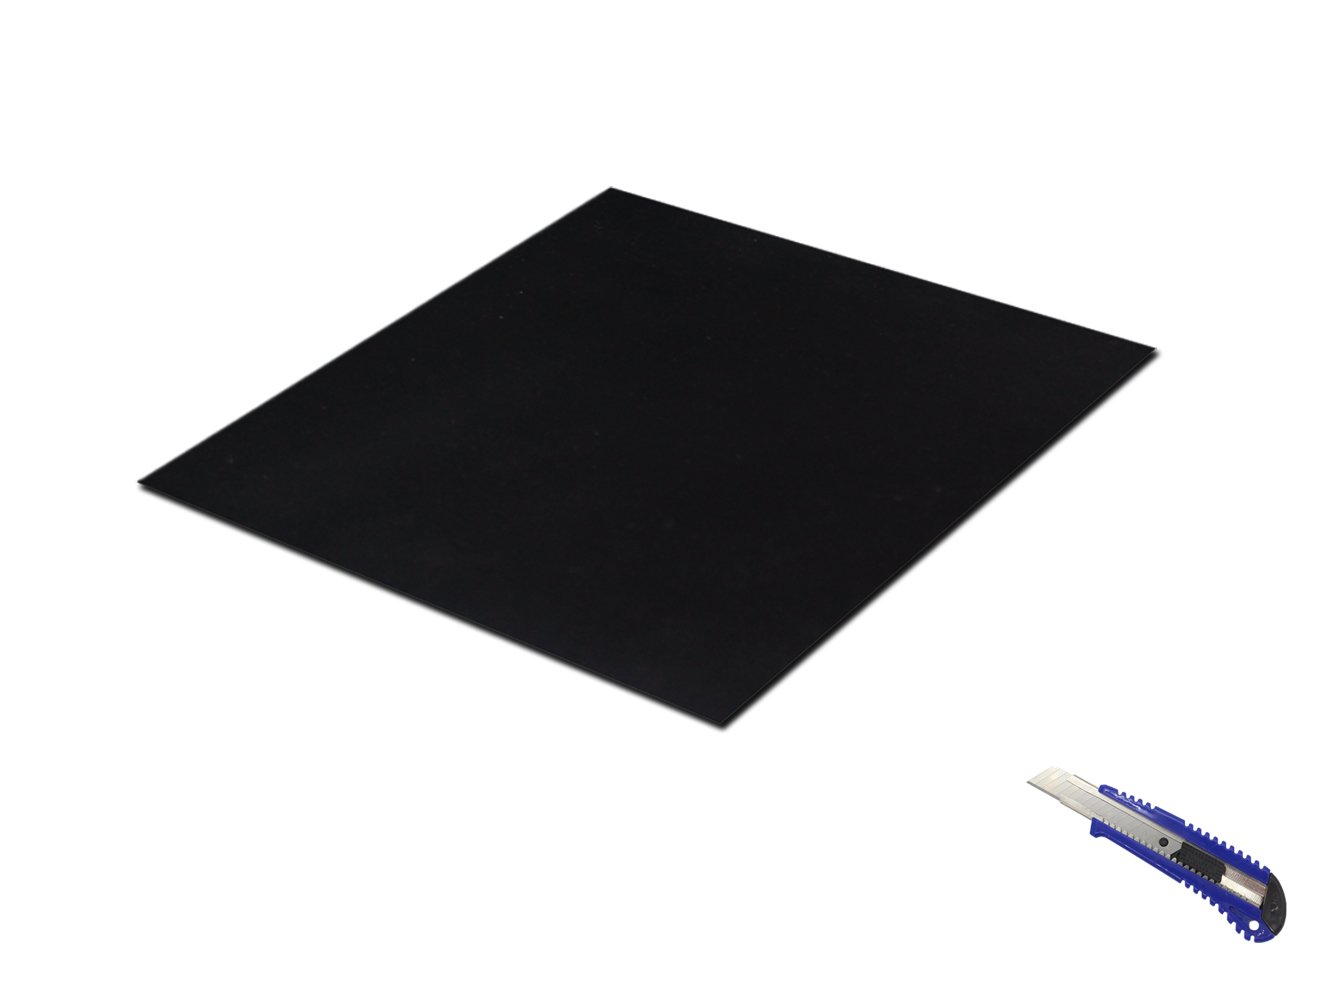 Rubber Sheet Black,Heavy Duty,11.8〃x11.8〃x0.059〃, Gaskets DIY Material, Supports, Leveling, Sealing, Bumpers, Protection, Abrasion, Flooring